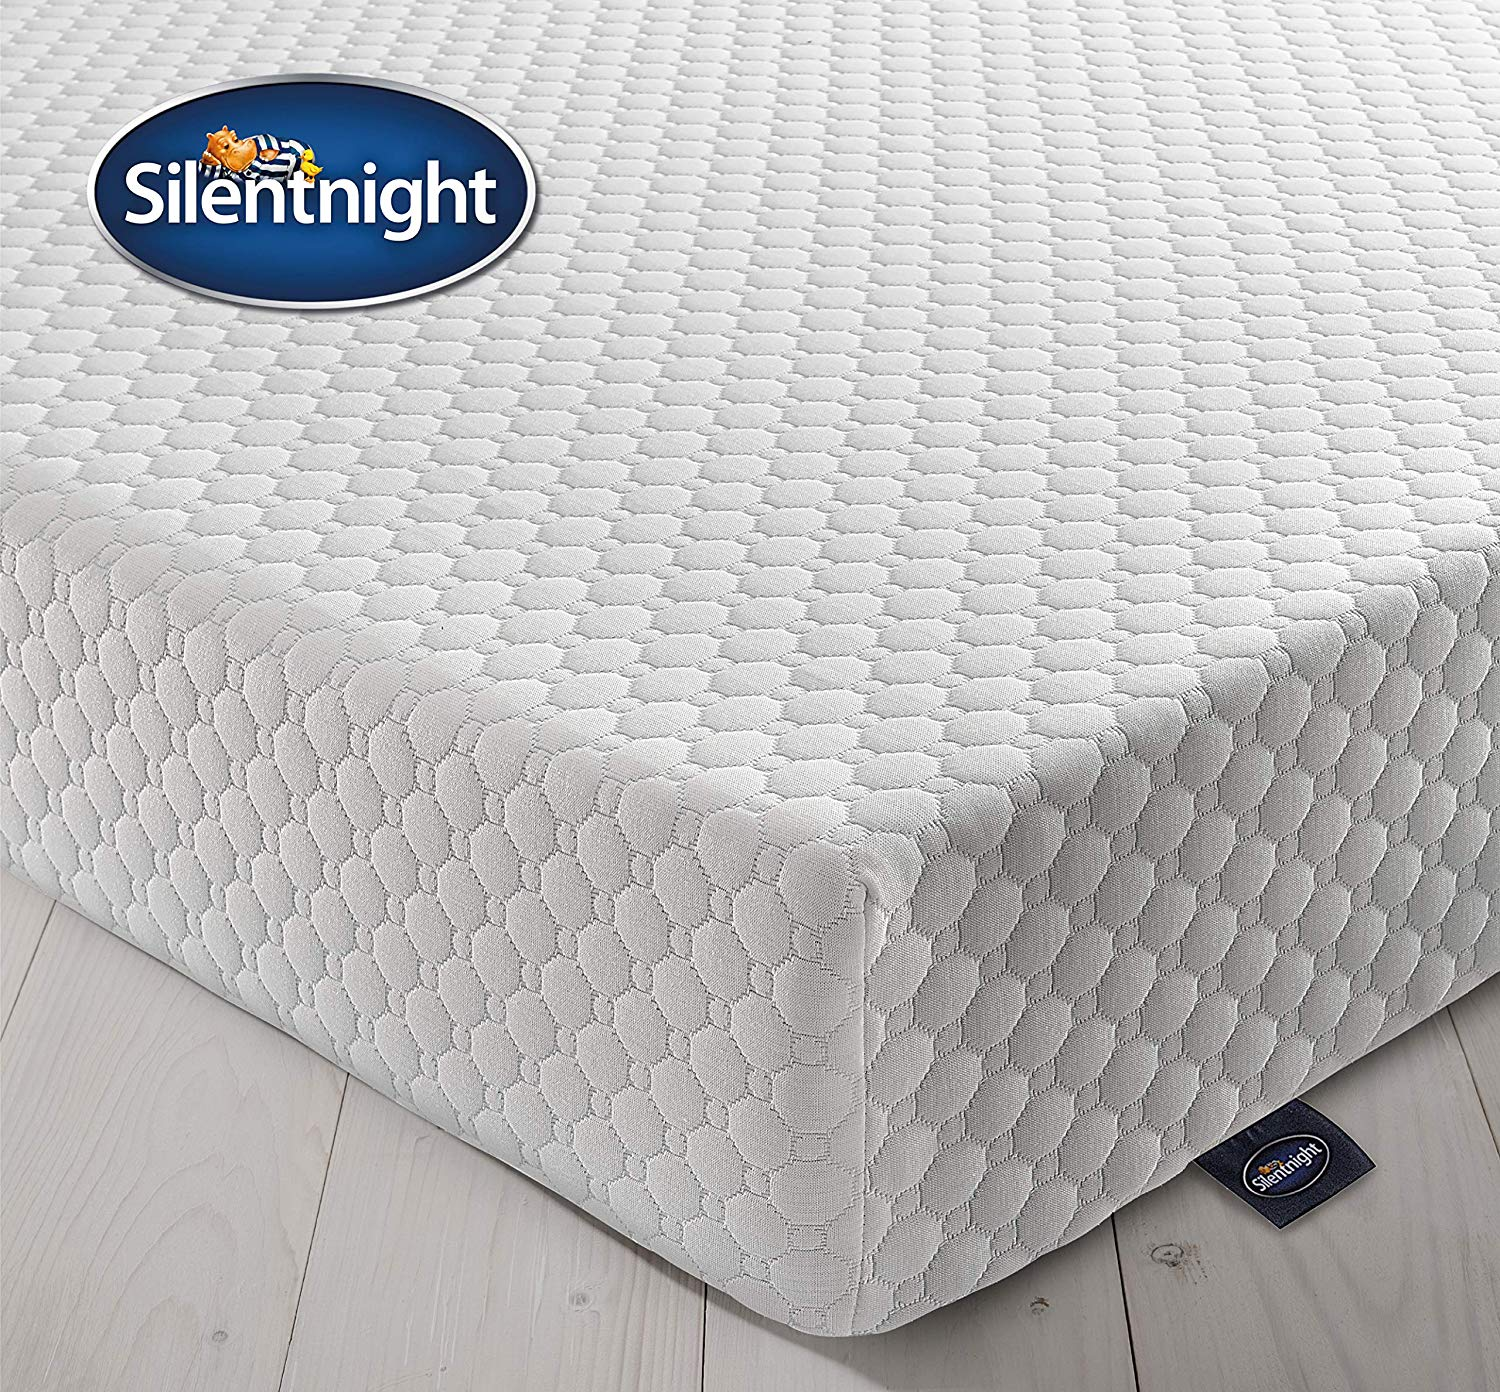 49% Silentnight 7 Zone Memory Foam Rolled Mattress, Made in the UK, Medium Firm, UK King